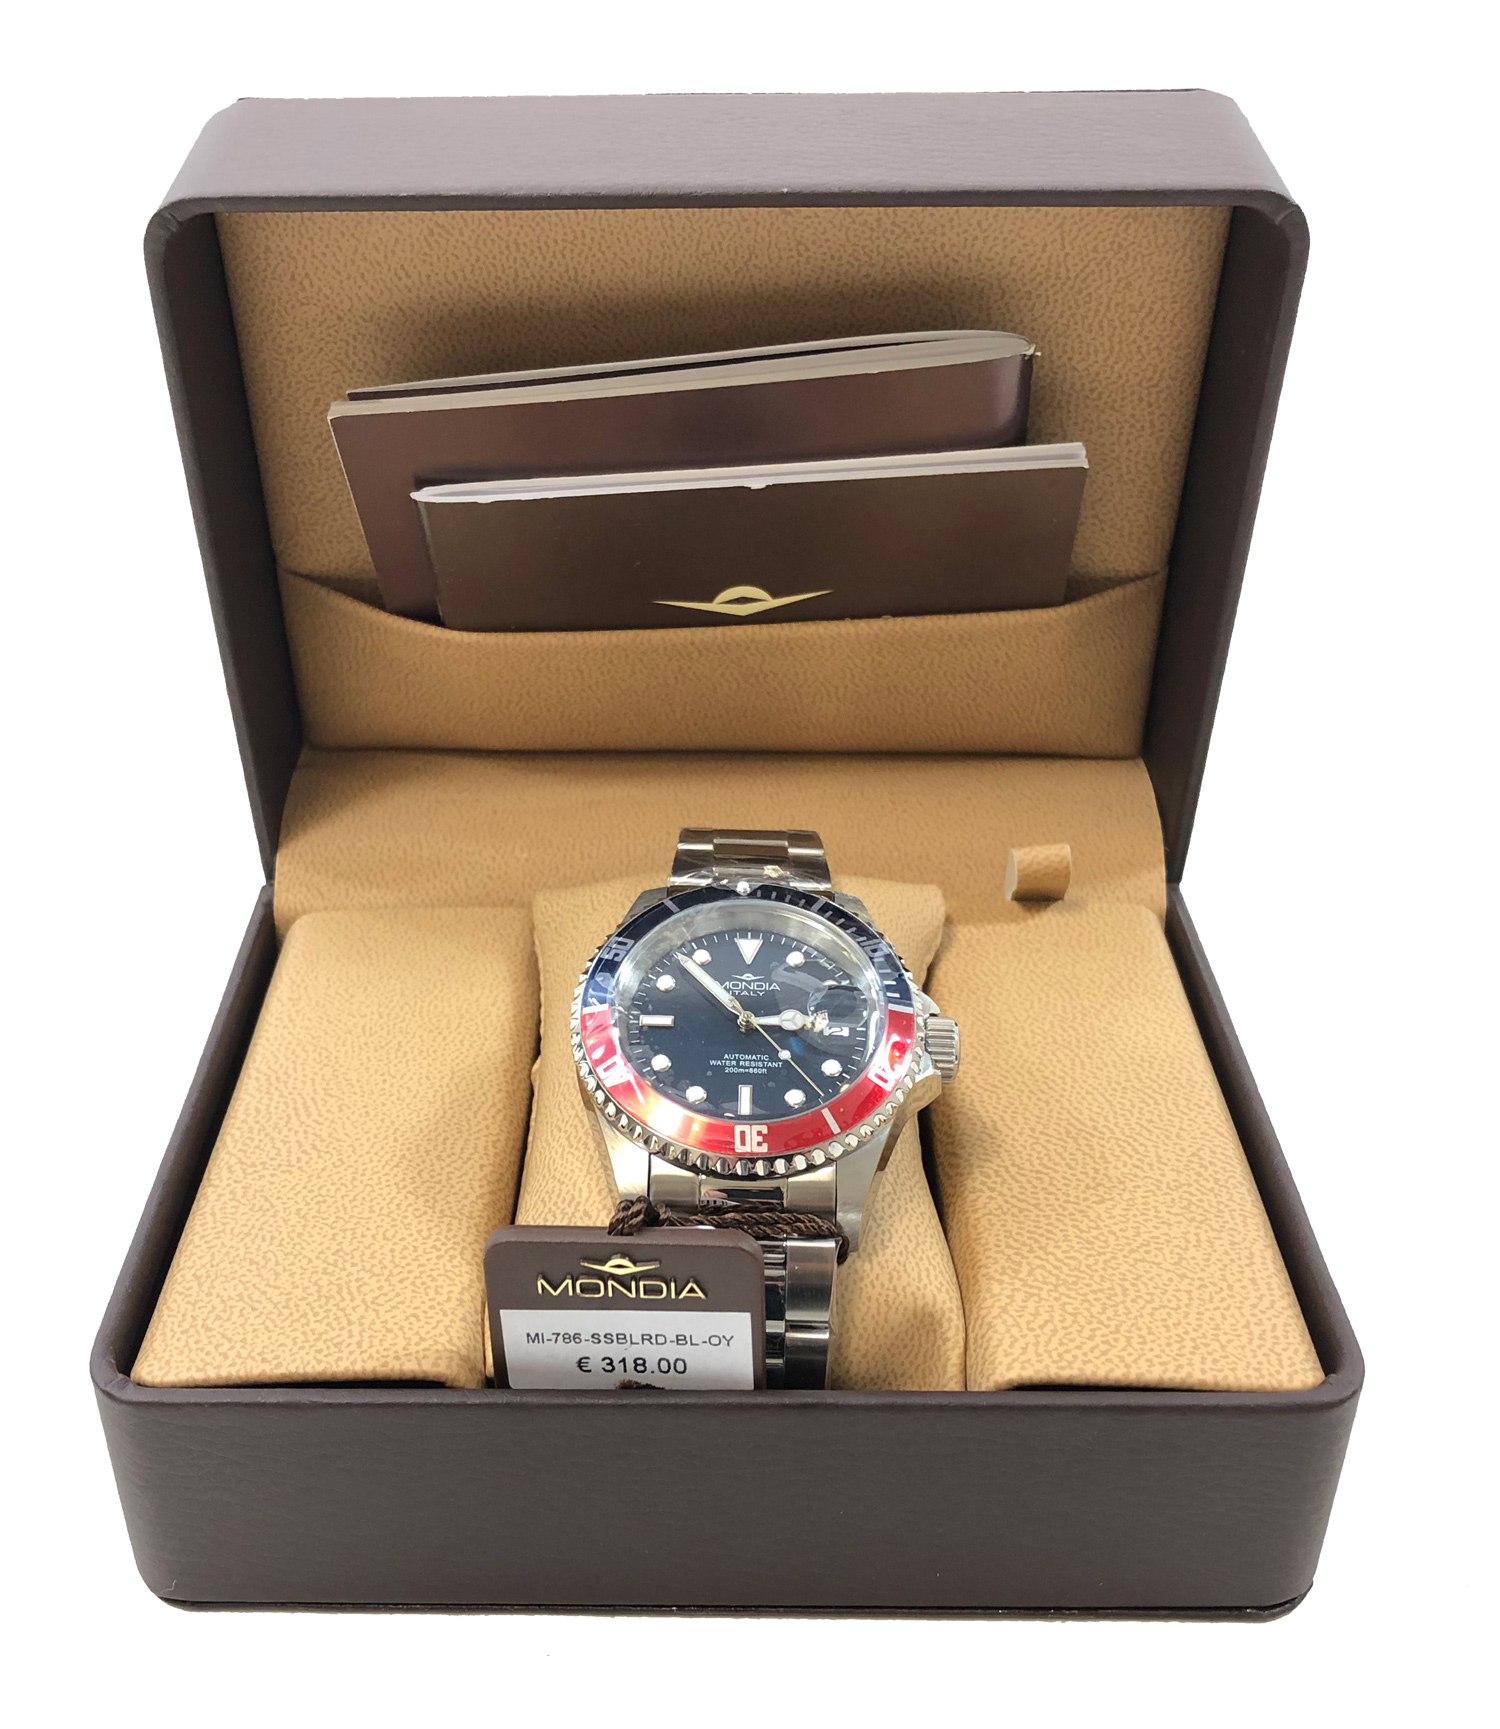 Mondia Italy Watch Gent Madison Urban Automatic Blue&Red 42mm MI-786-SSBLRD-BL-OY